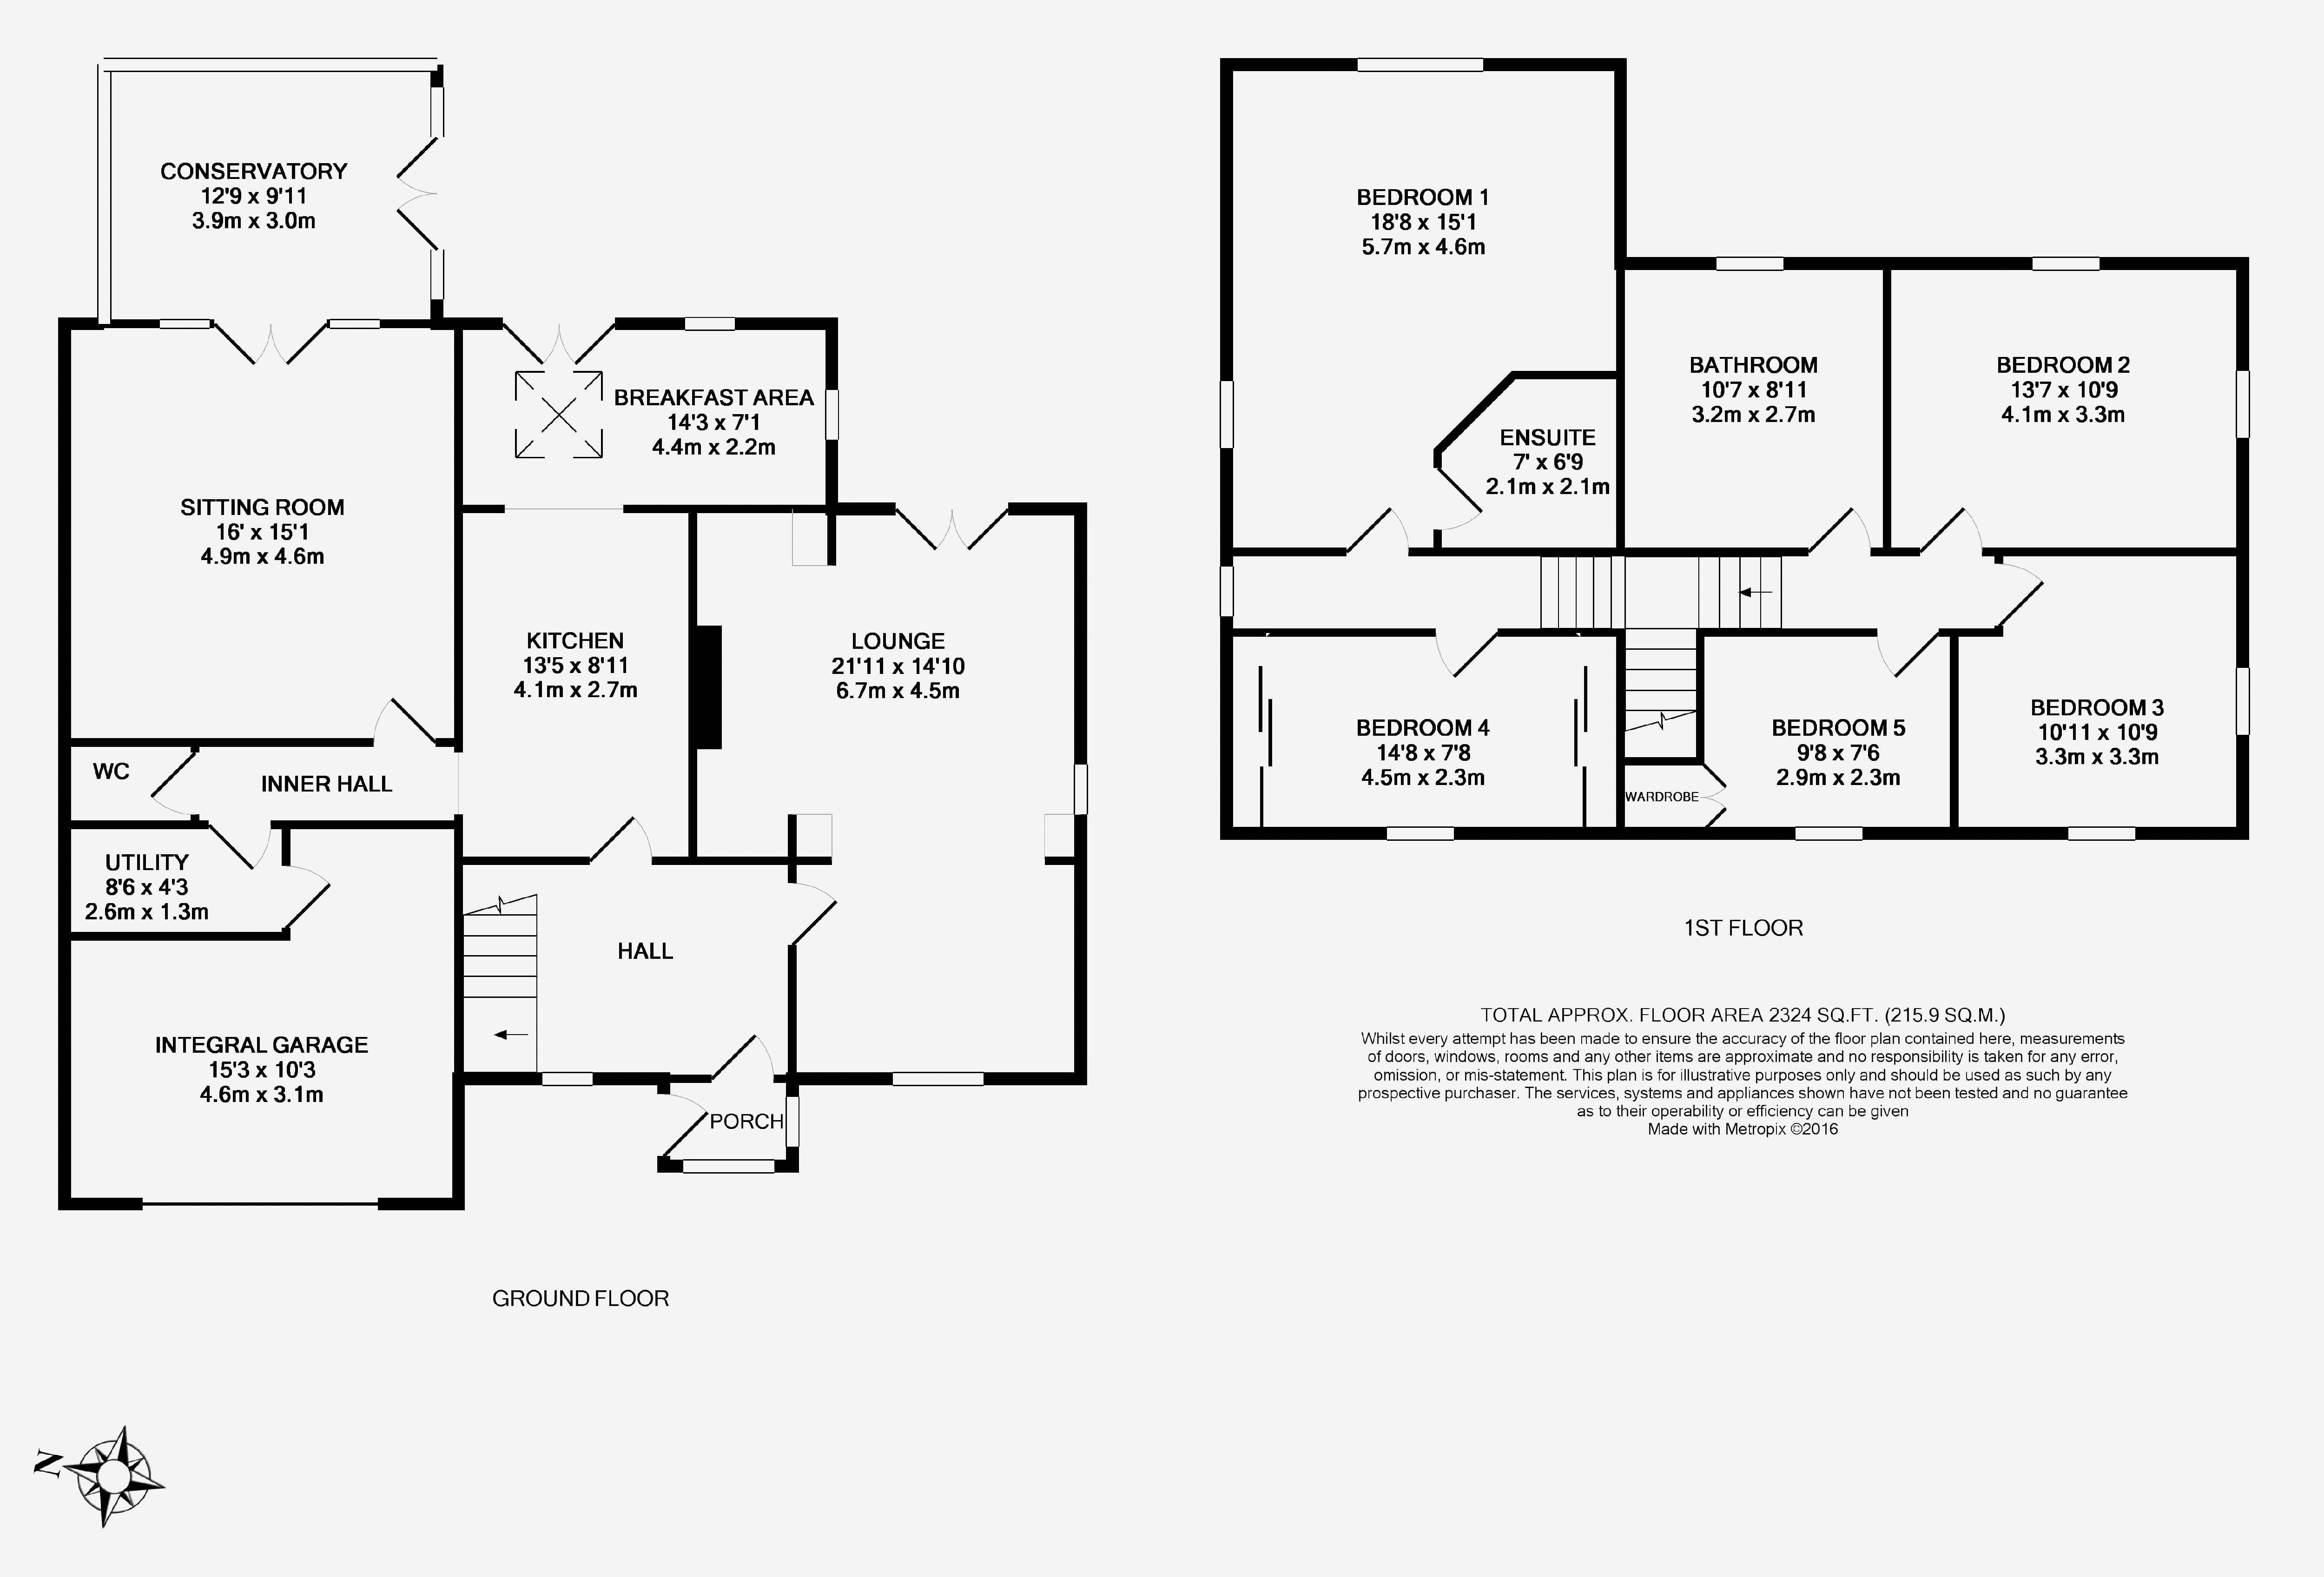 Mill lane heswall wirral ch60 5 bedroom detached house for 16 brookers lane floor plans